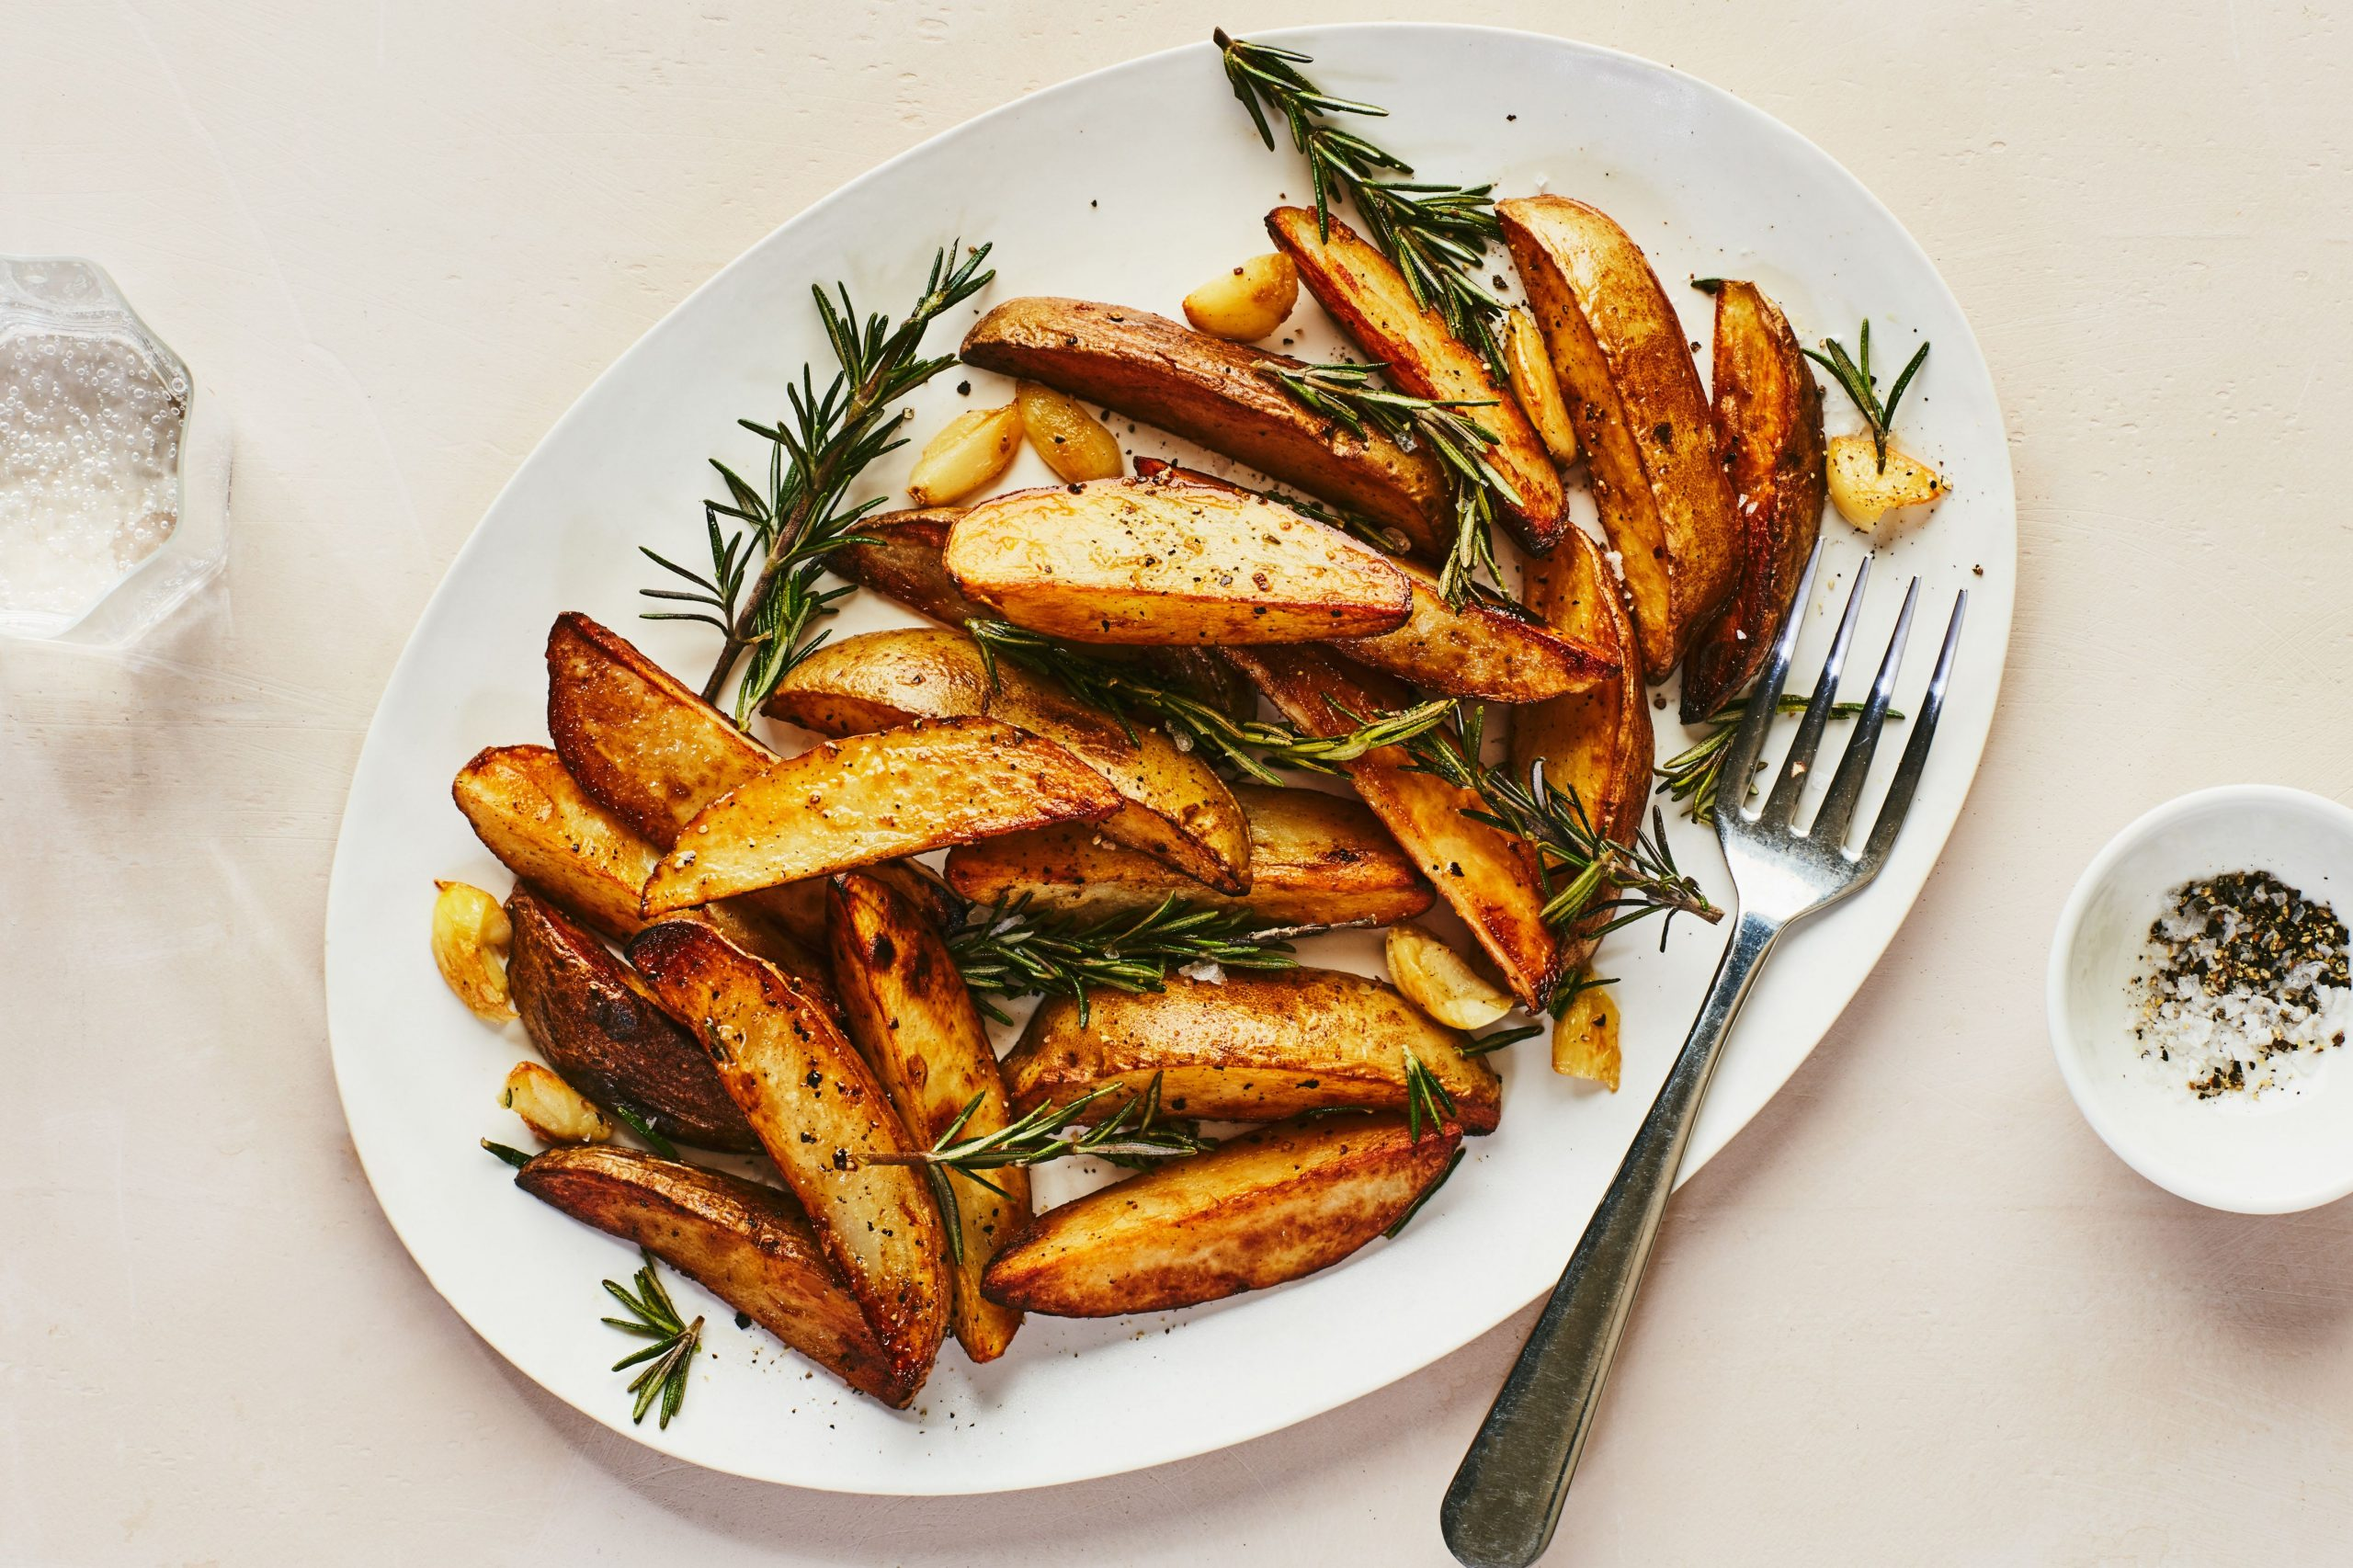 Rosemary and Garlic Roasted Potatoes - Potato Recipes Epicurious